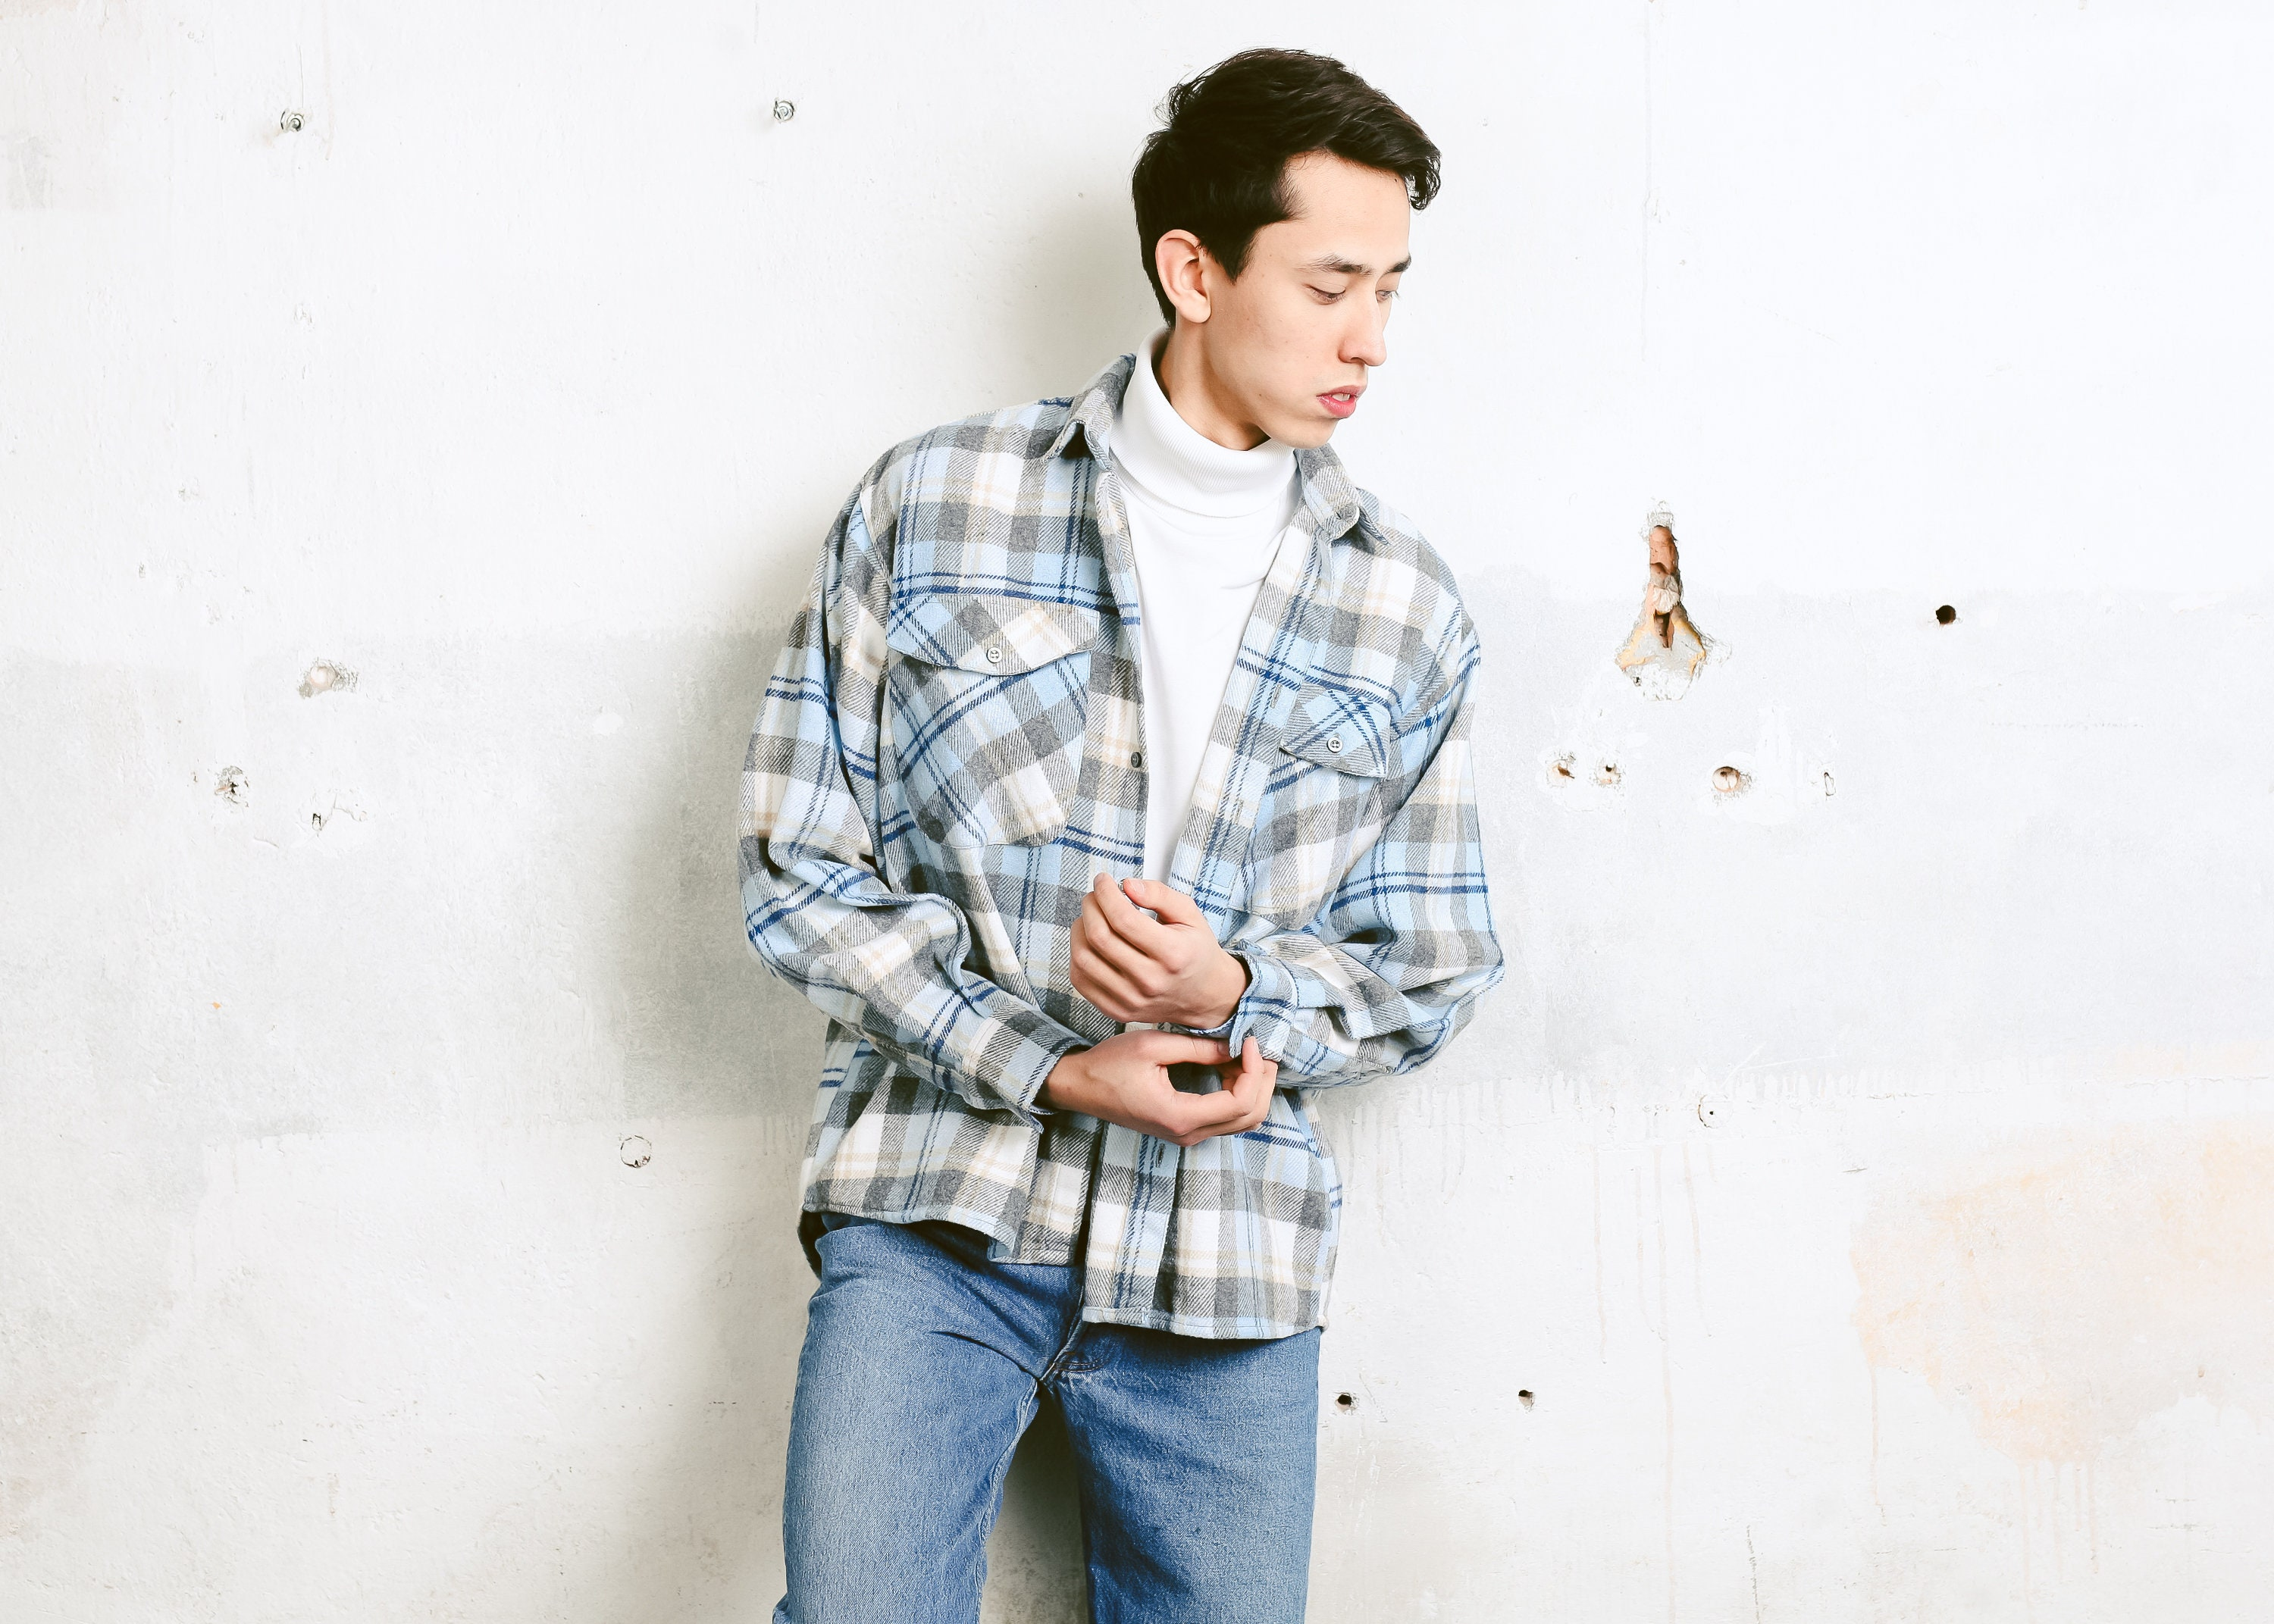 Plaid Flannel Shirt Vintage Men 90s Shirt Grunge Shirt Boyfriend